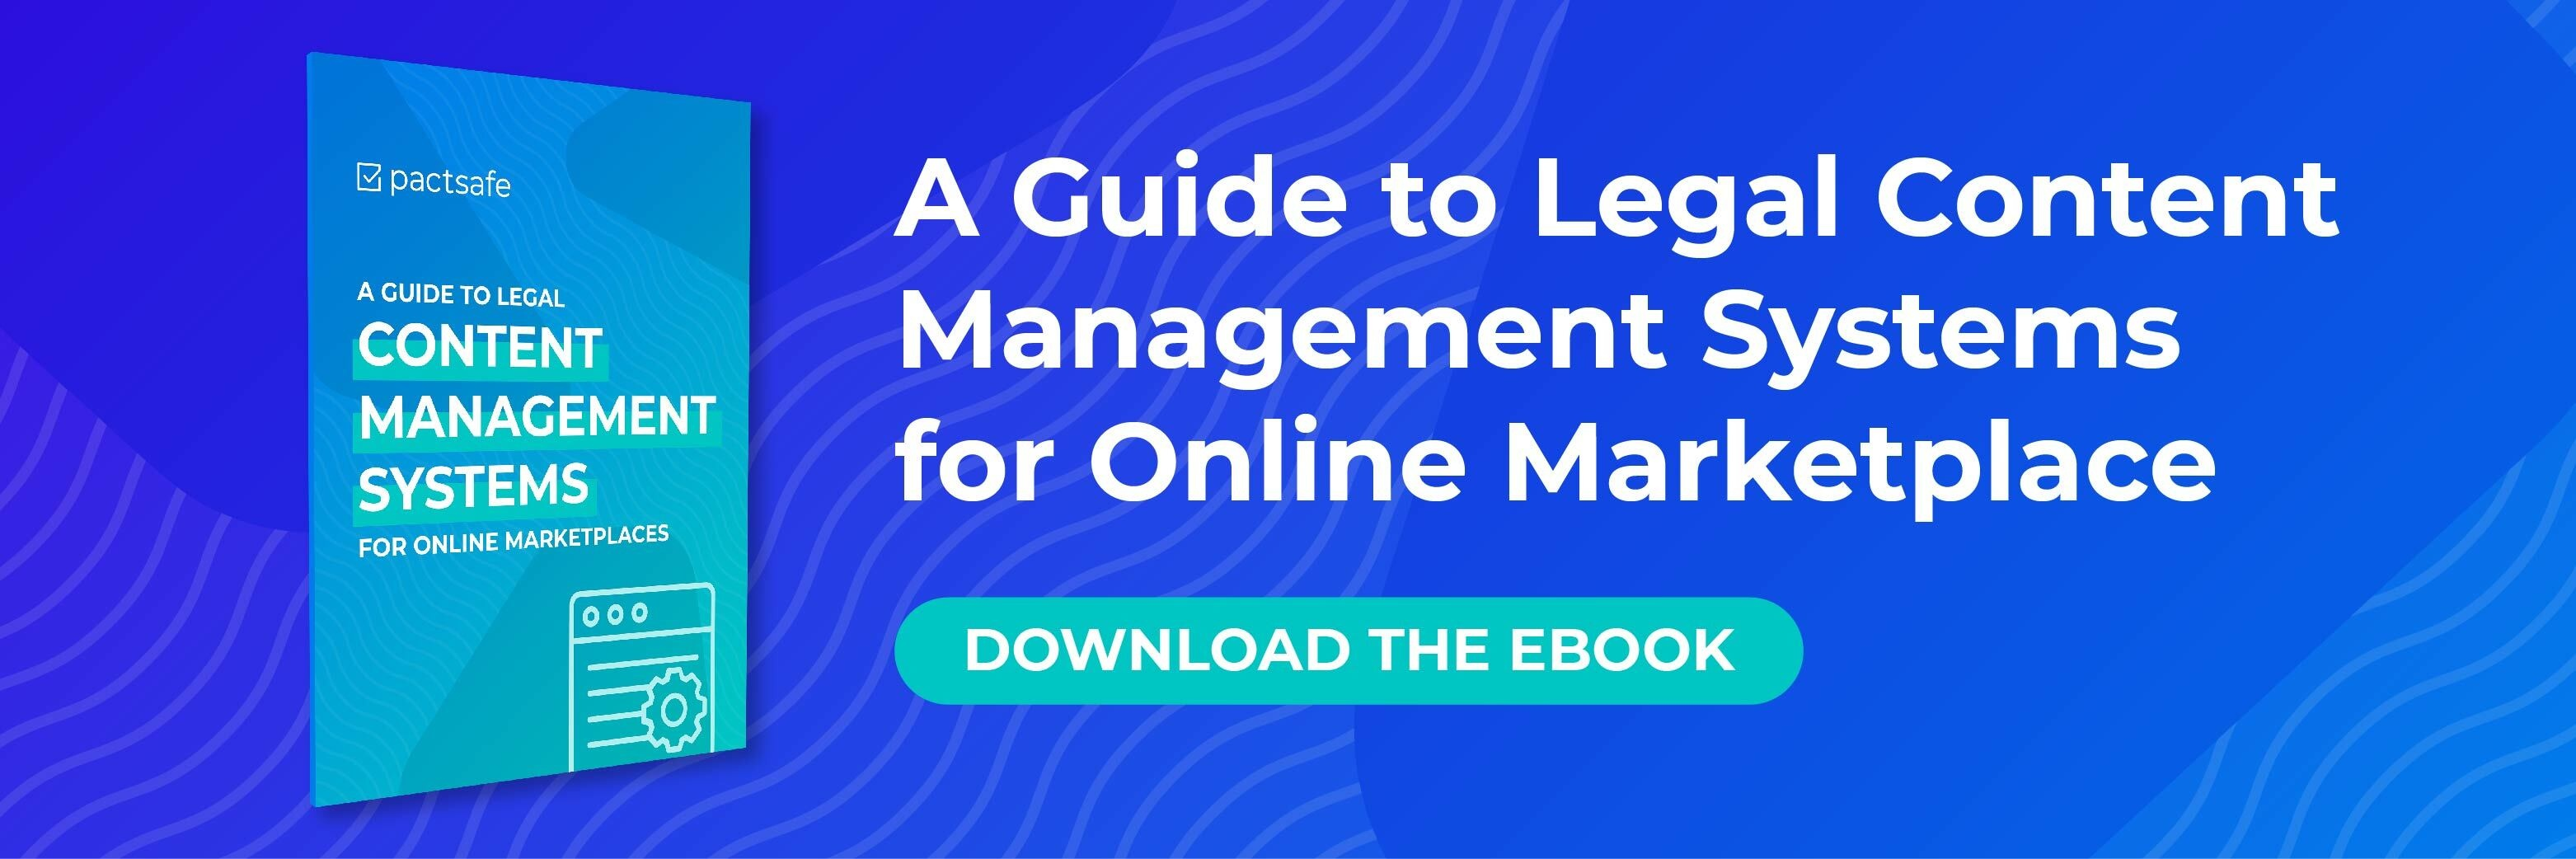 Download the Guide to Legal Content Management Systems